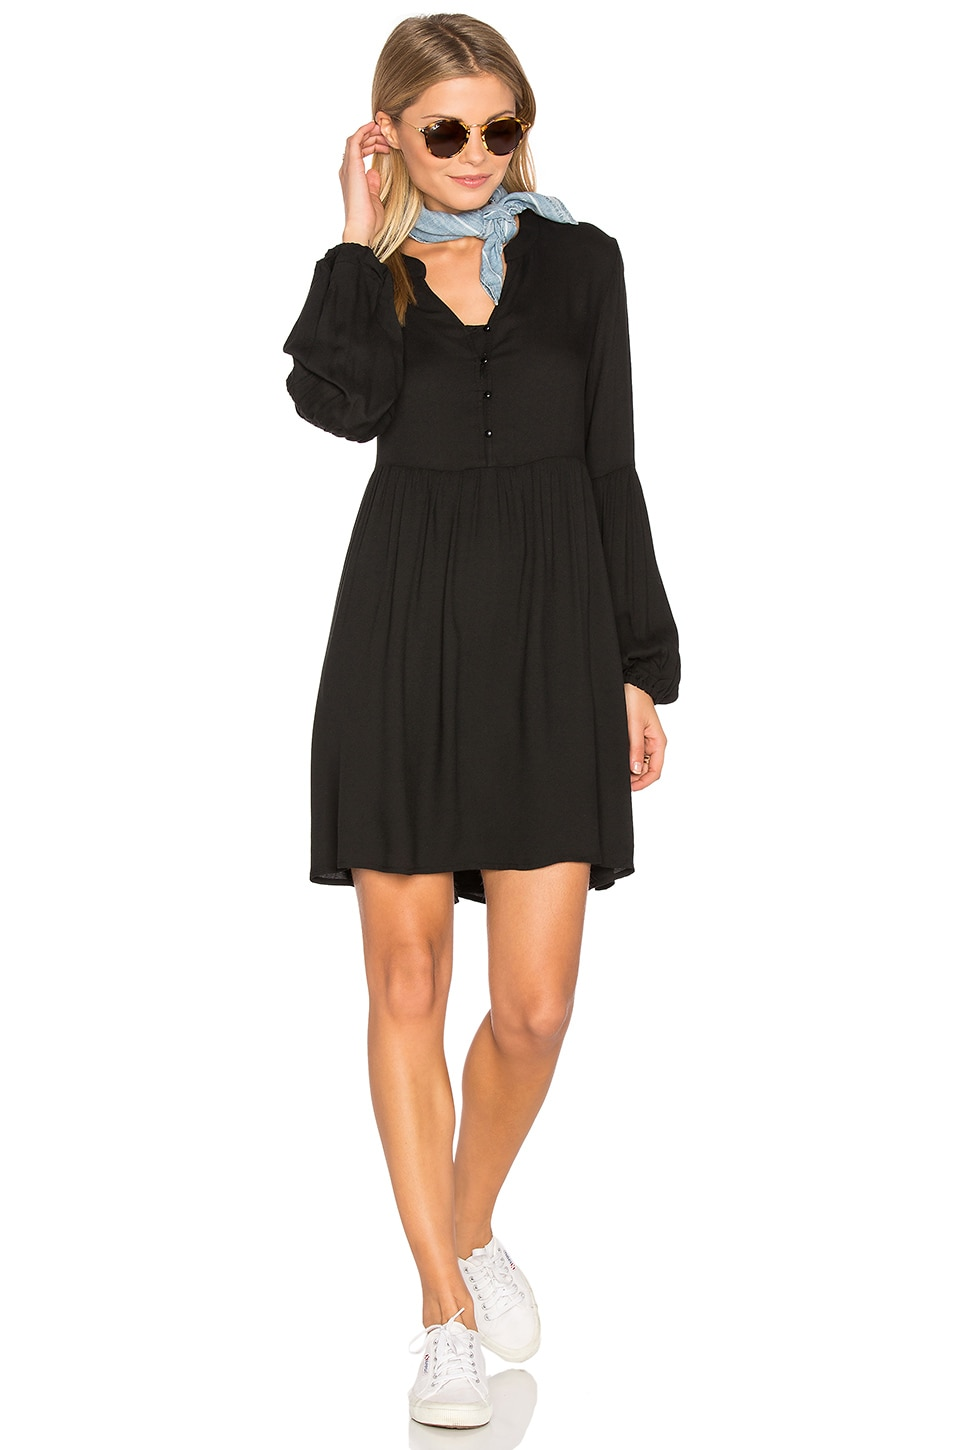 BB Dakota Jack By BB Dakota Jerrilyn Mini Dress in Black